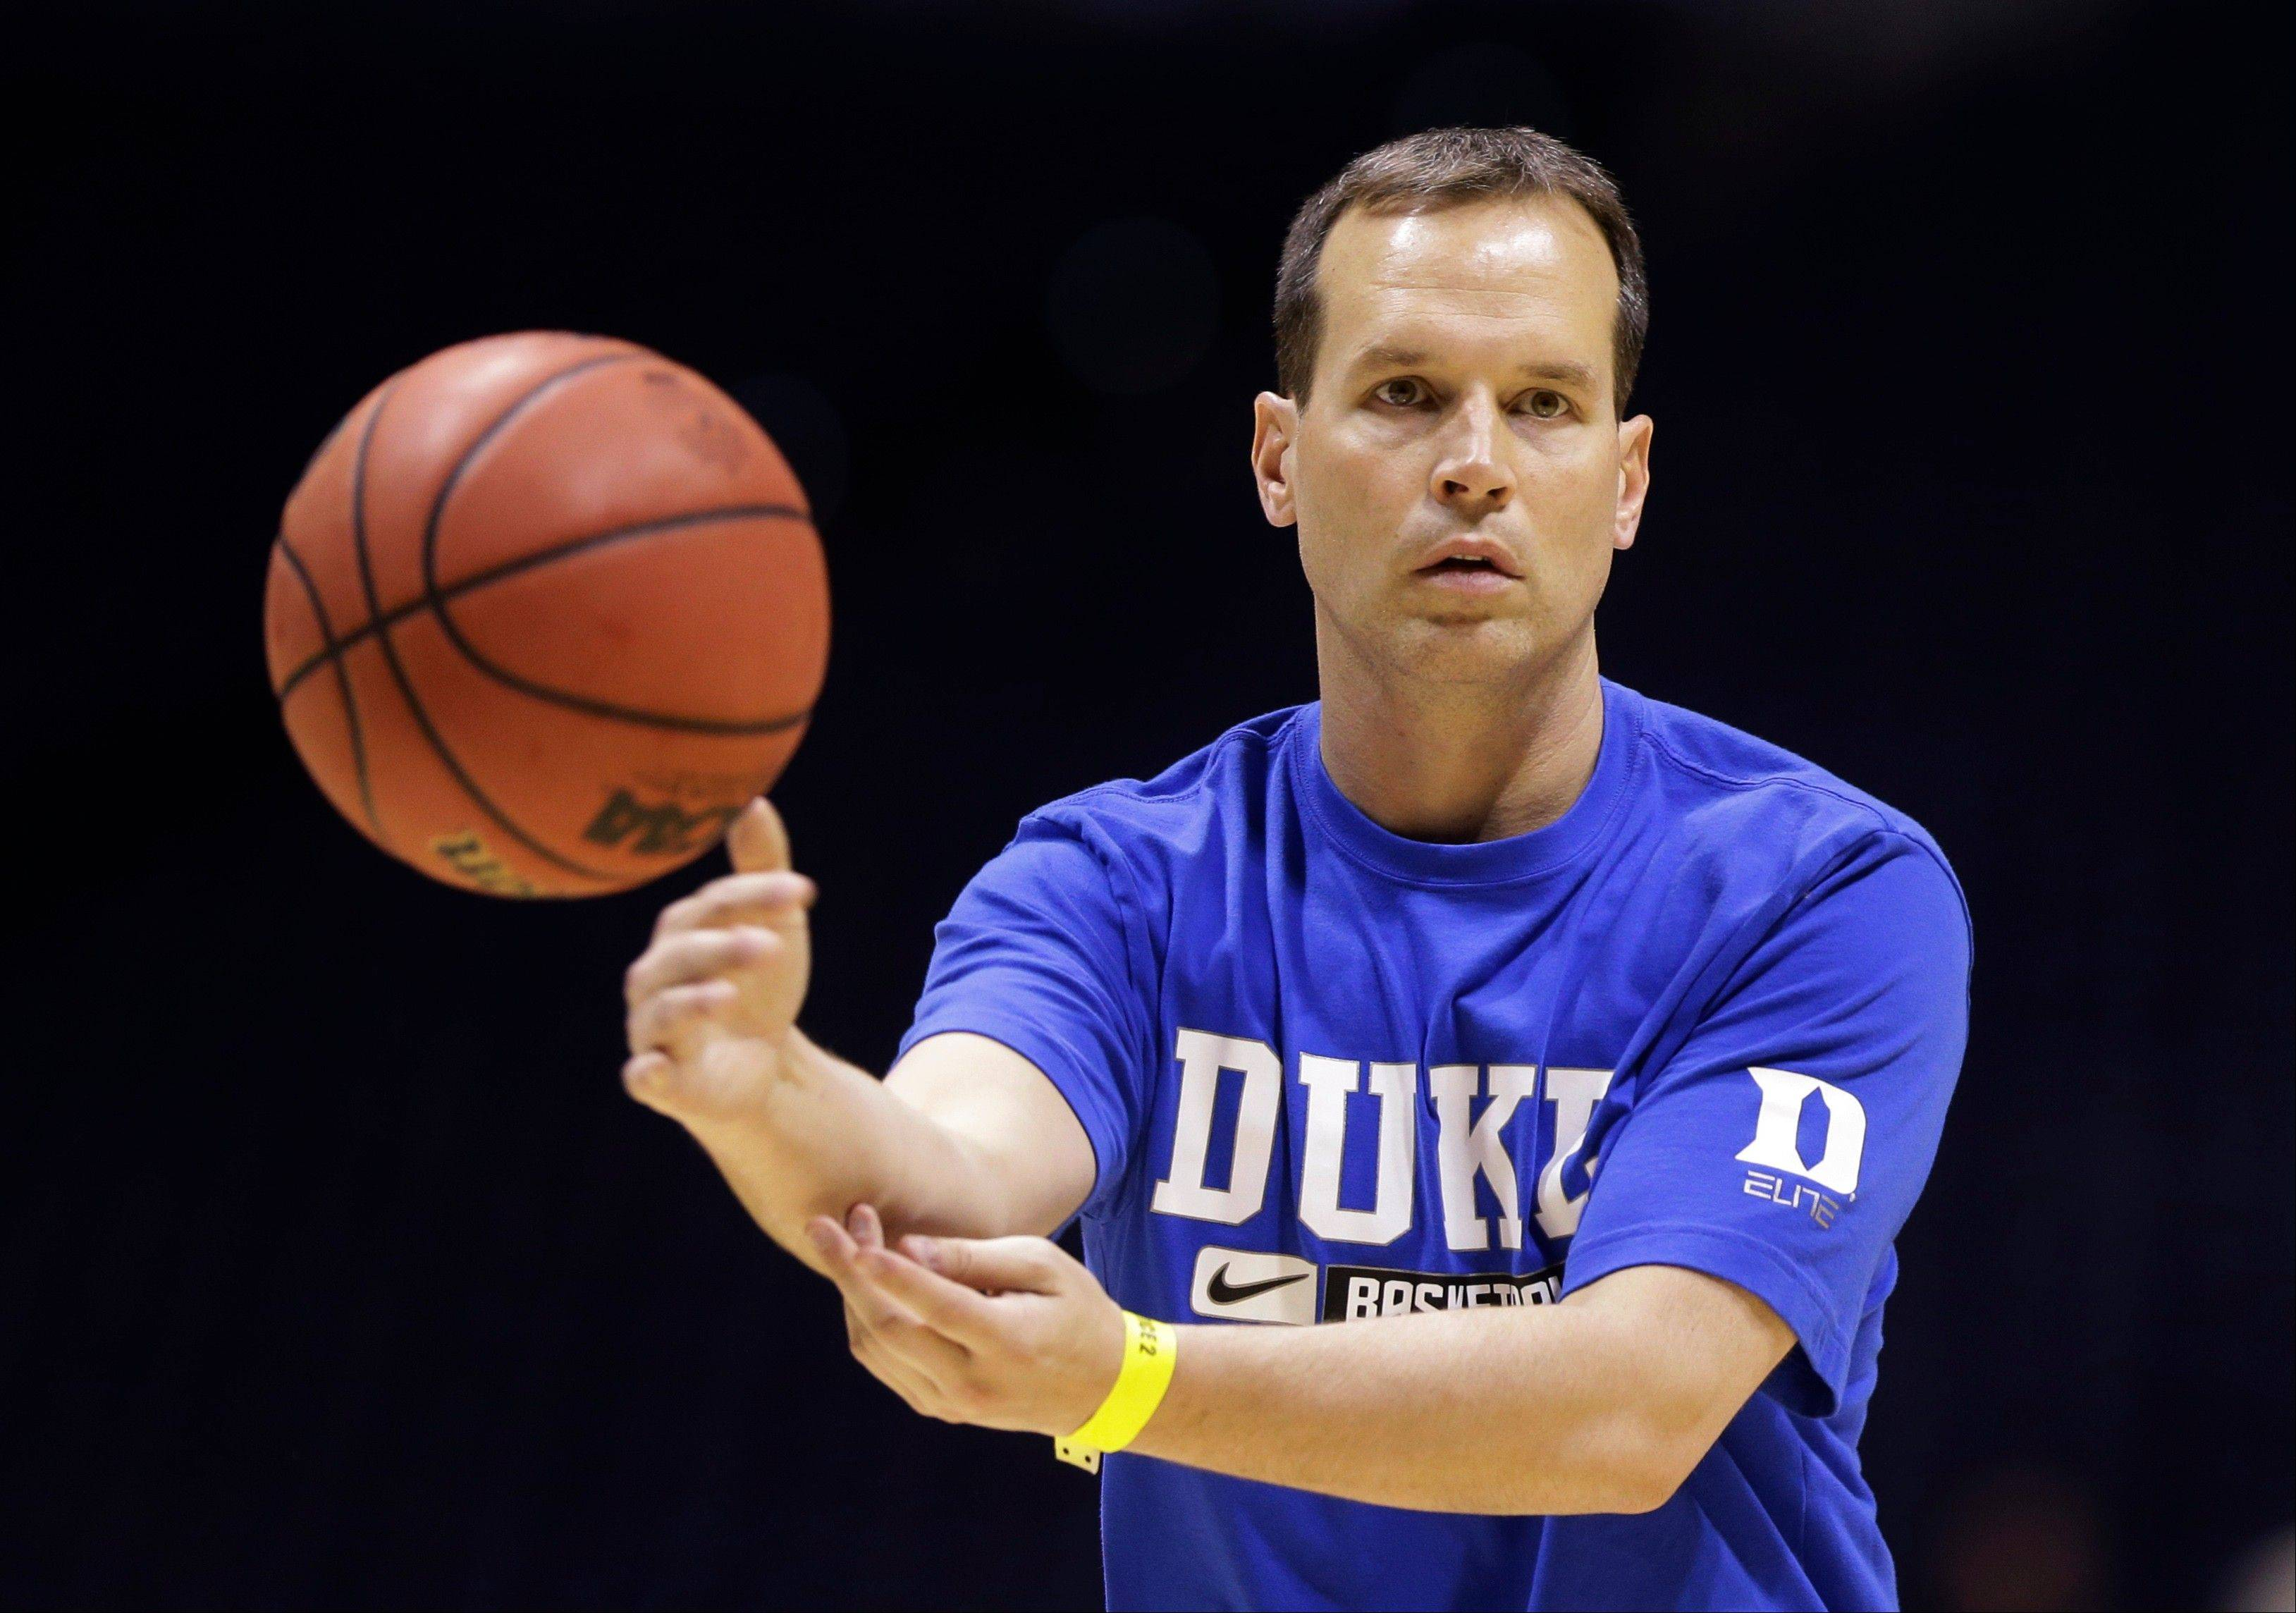 Duke associate head coach Chris Collins directs the team during practice for a regional semifinal game in the NCAA basketball tournament Thursday in Indianapolis. Duke plays Michigan State on Friday. On Tuesday, Collins was hired as the new head coach at Northwestern.